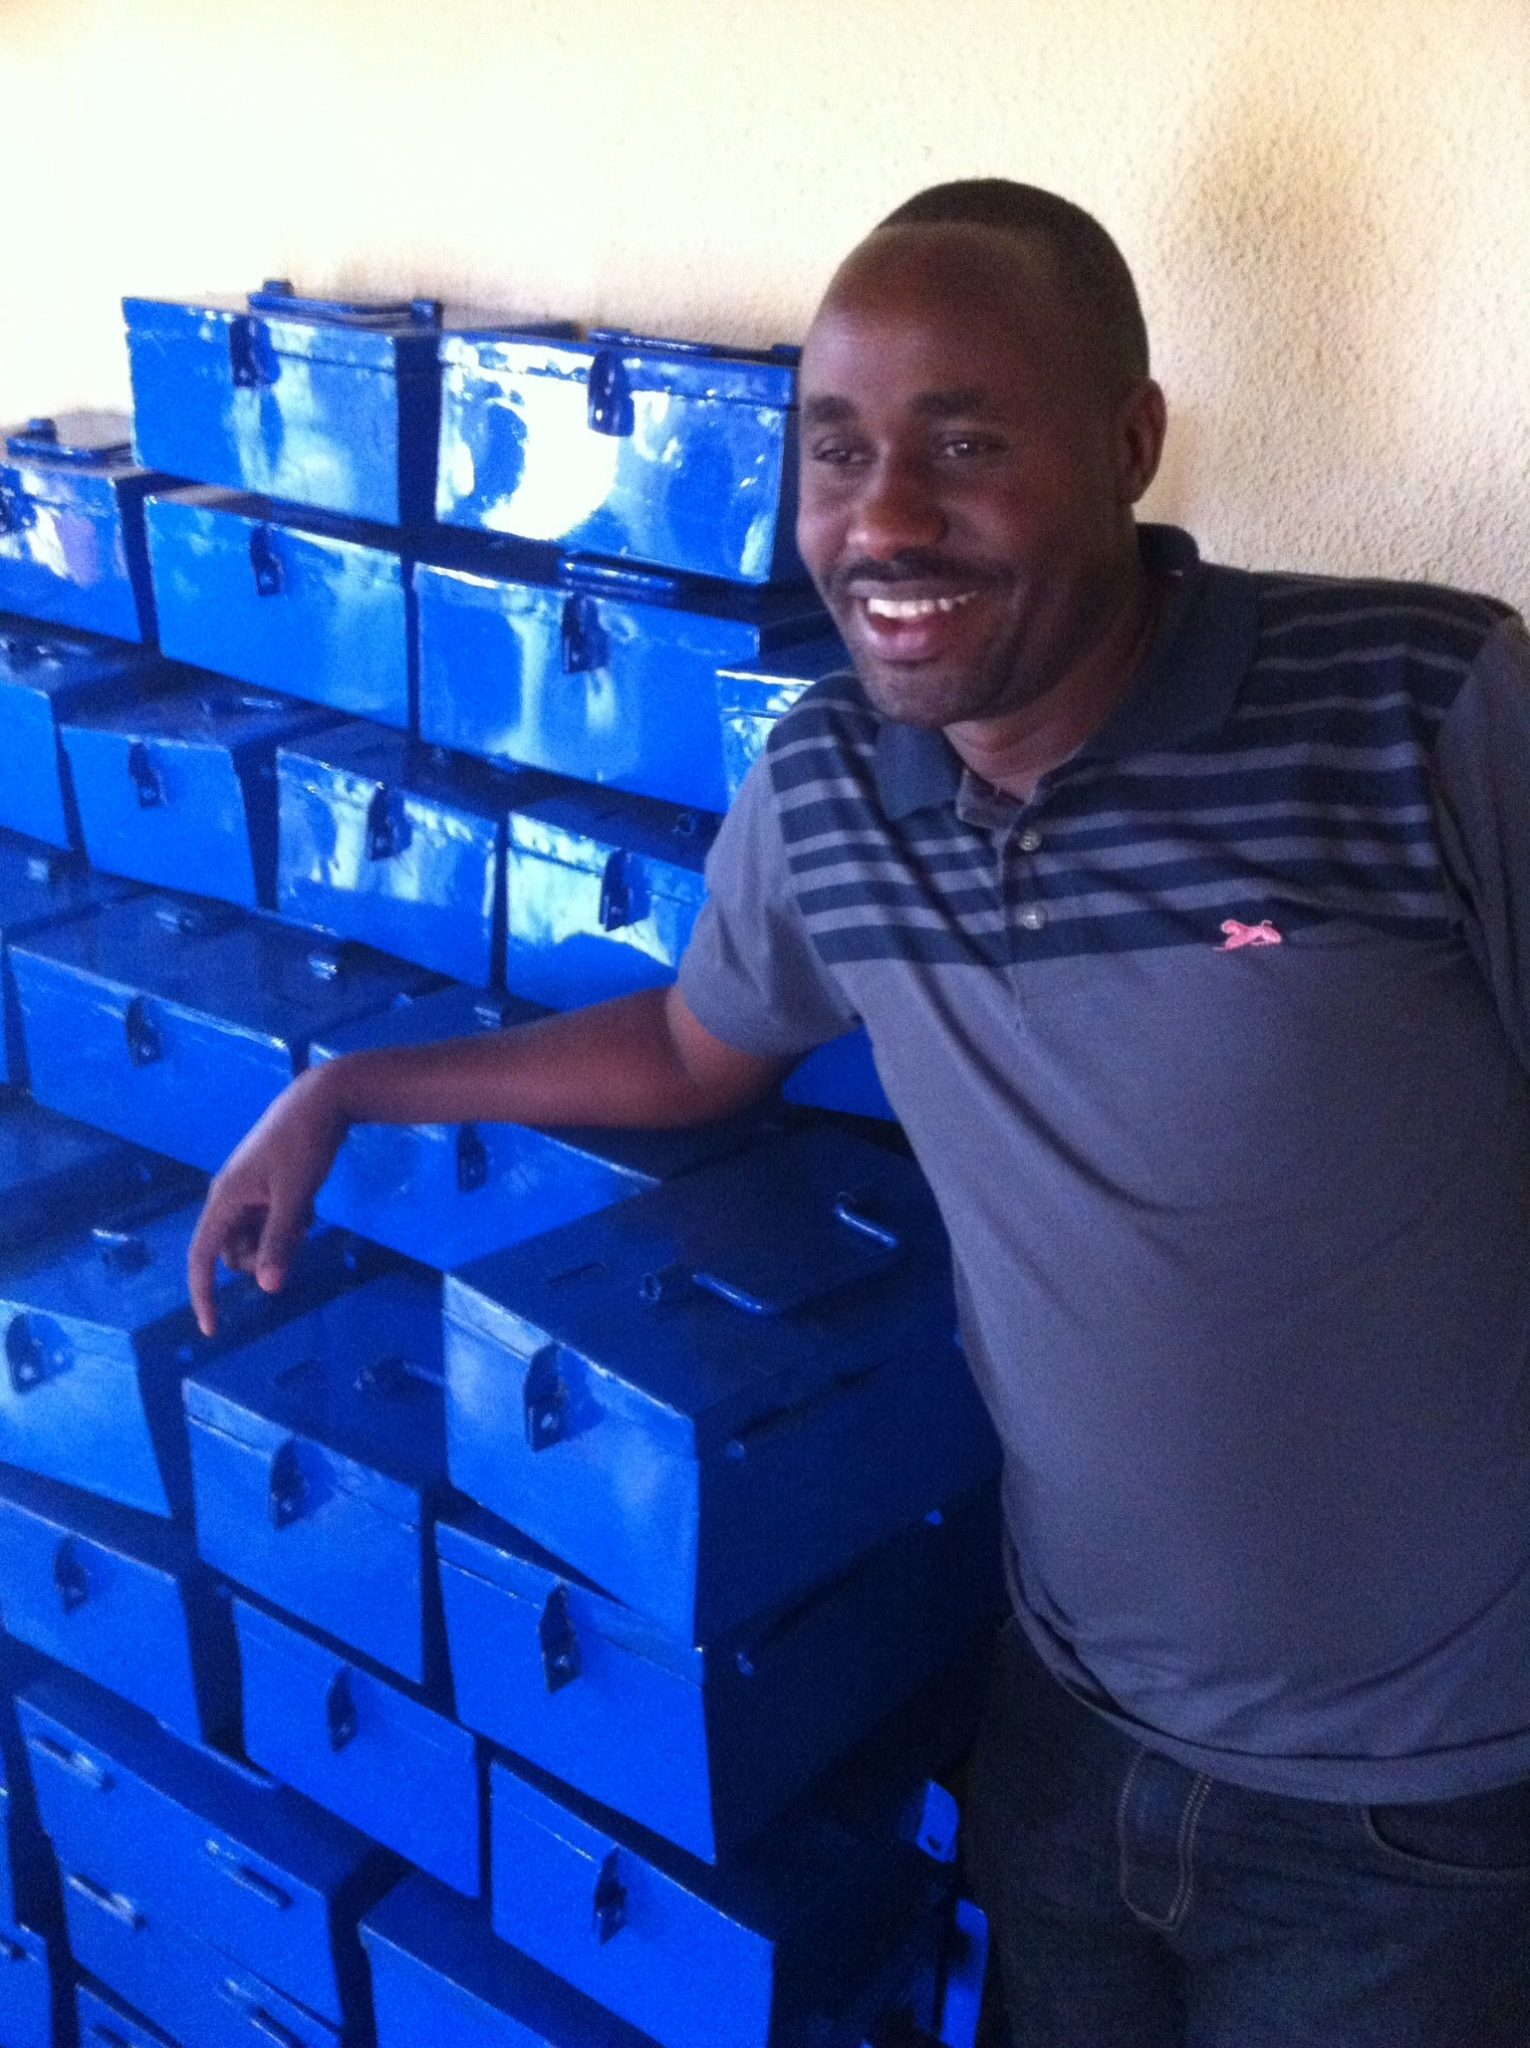 Chriso with saving boxes